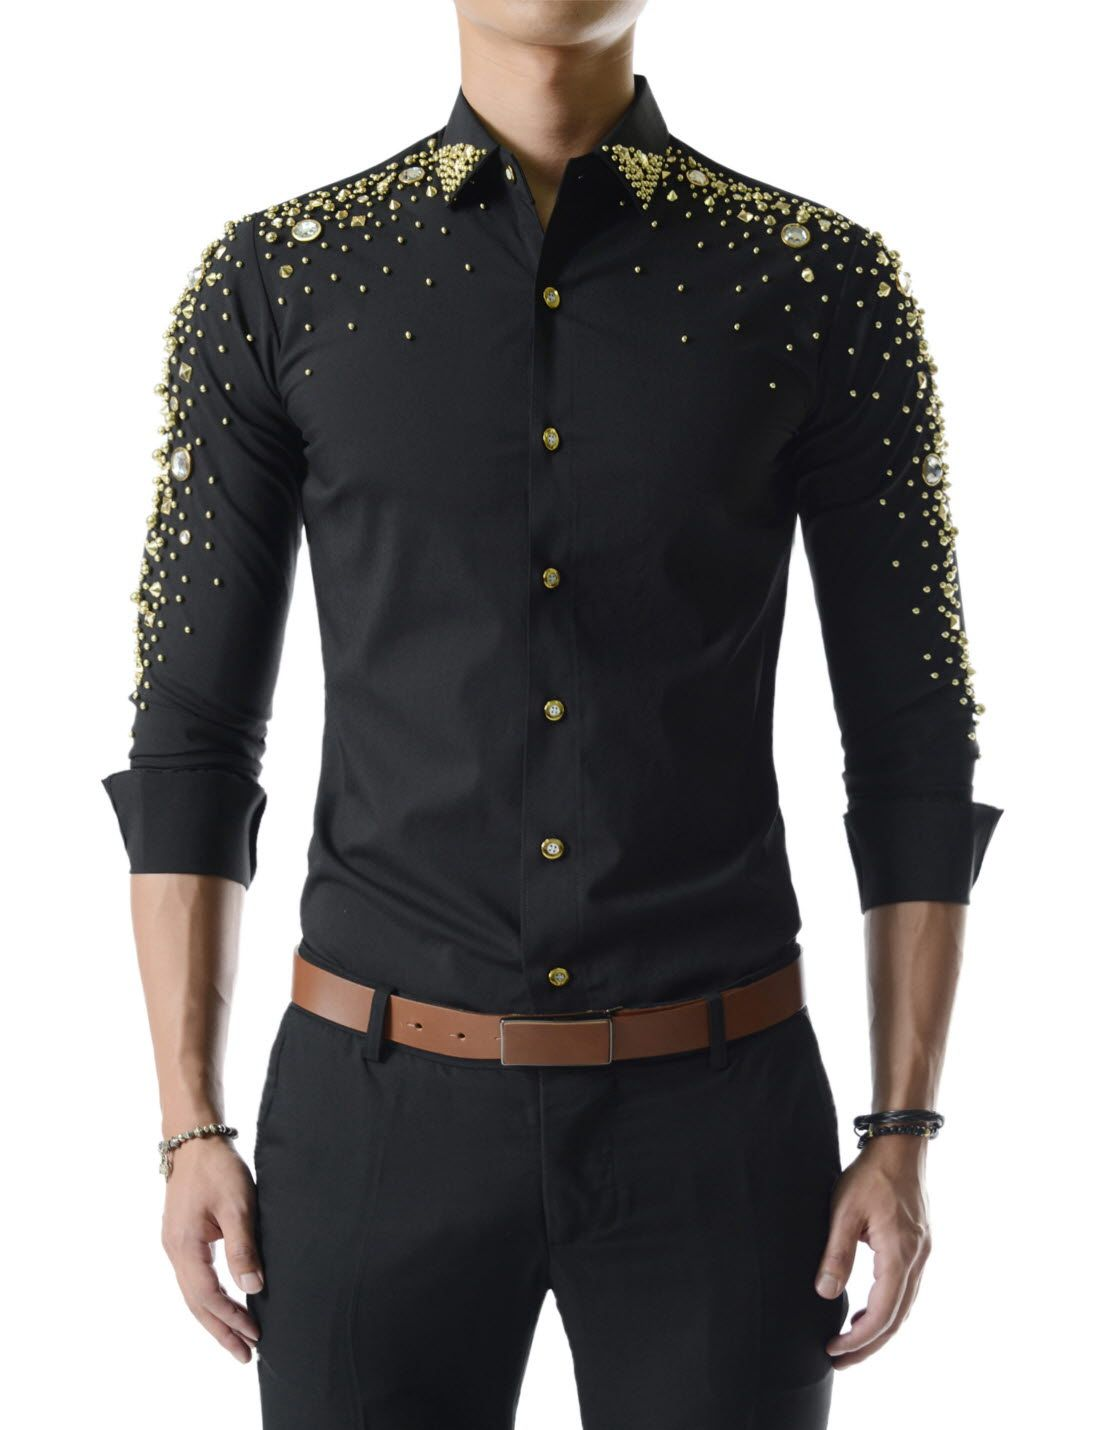 3471838d697 (UNLS01) Slim Fit Showy Stretchy Glitter Bling Long Sleeve Metallic Beads  Shirts